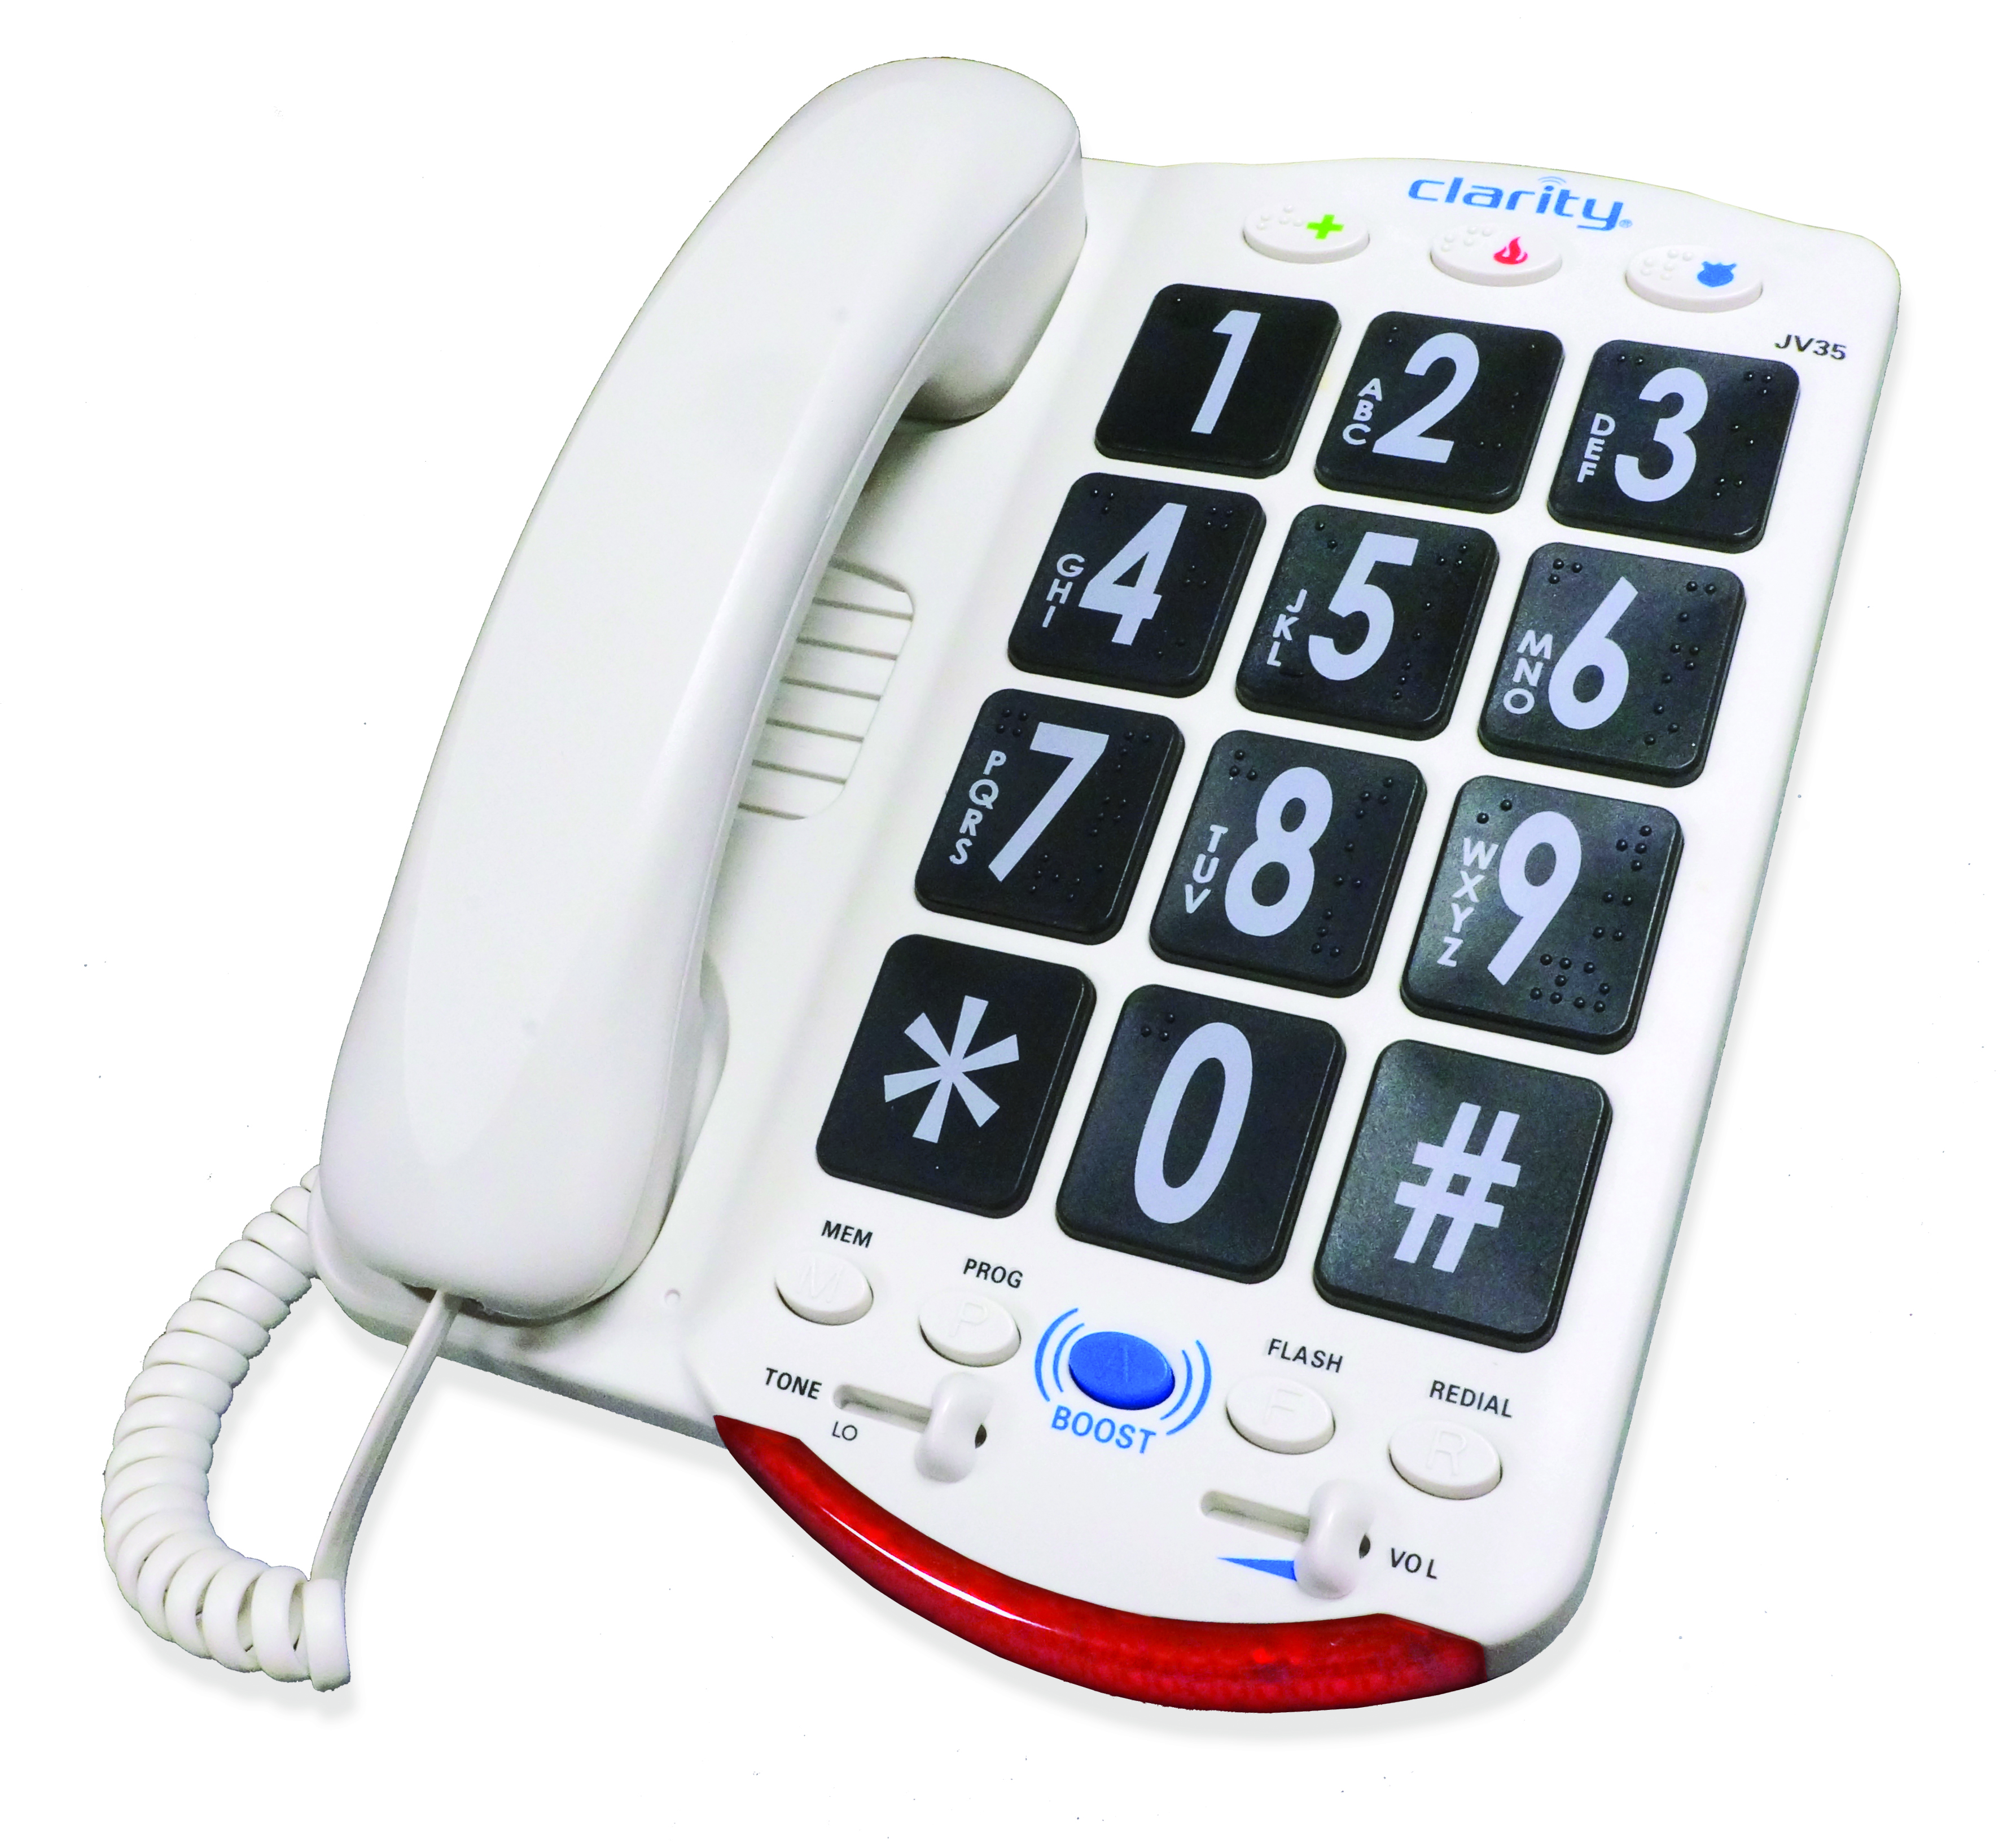 Image for Clarity JV35 Amplified Corded Phone with Talk Back Numbers from Circuit City